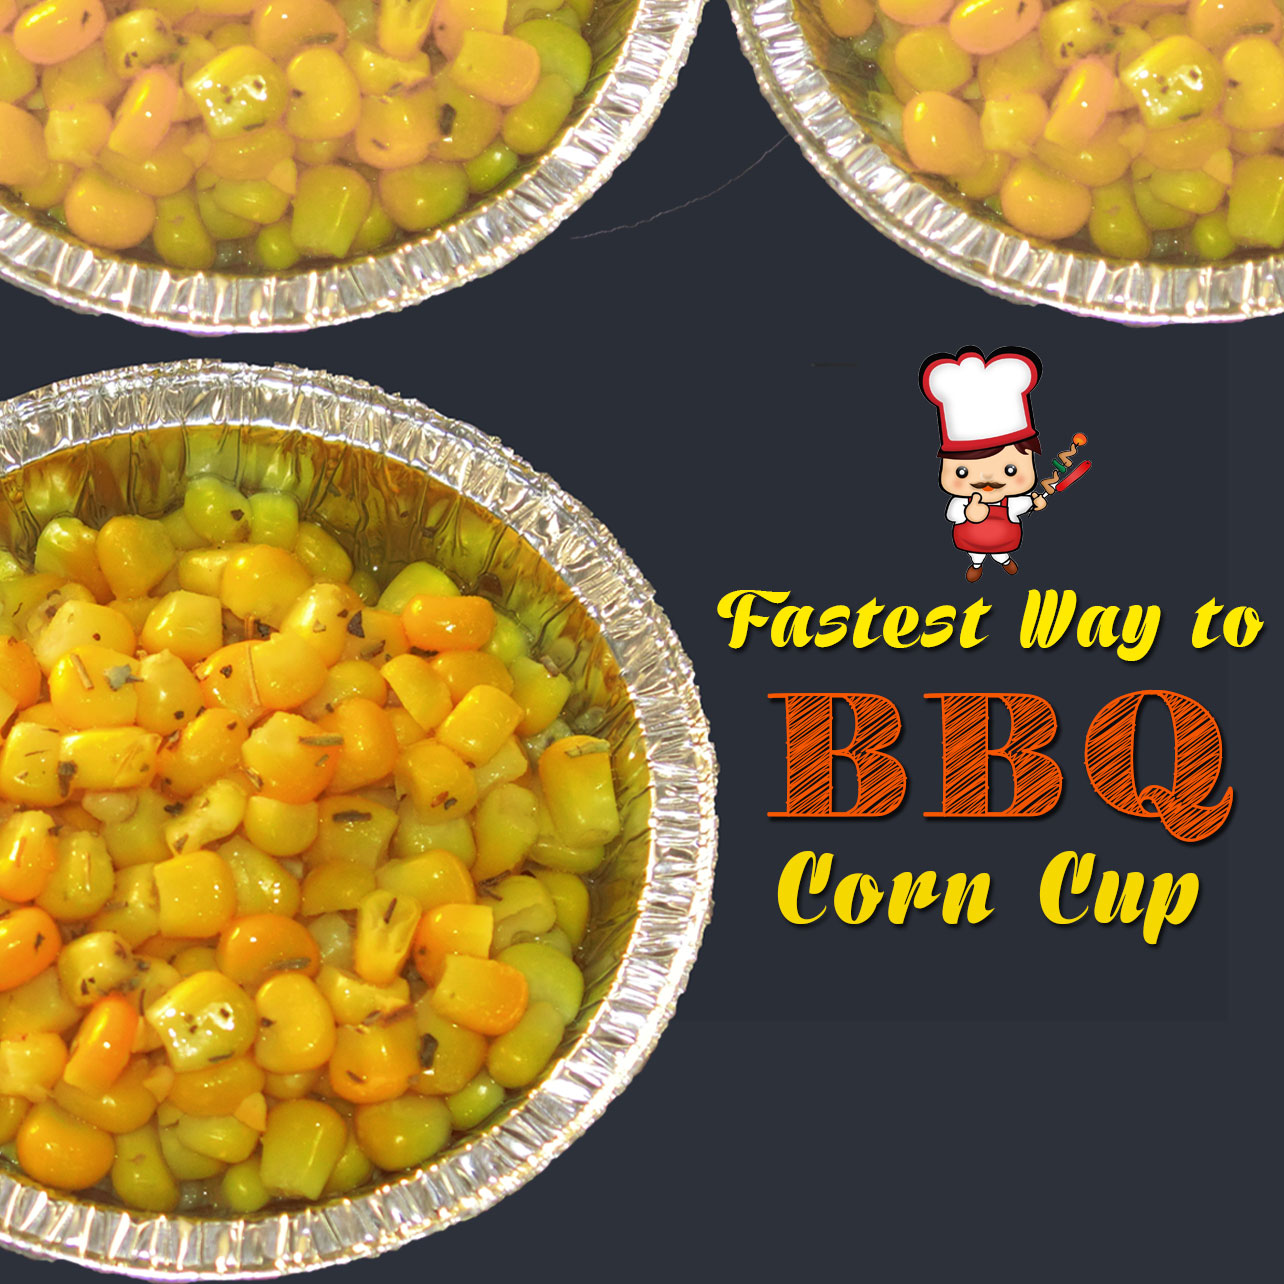 BBQ-Wholesale-Centre-Barbeucue-Sweet-Corn-Tutorial-Tip